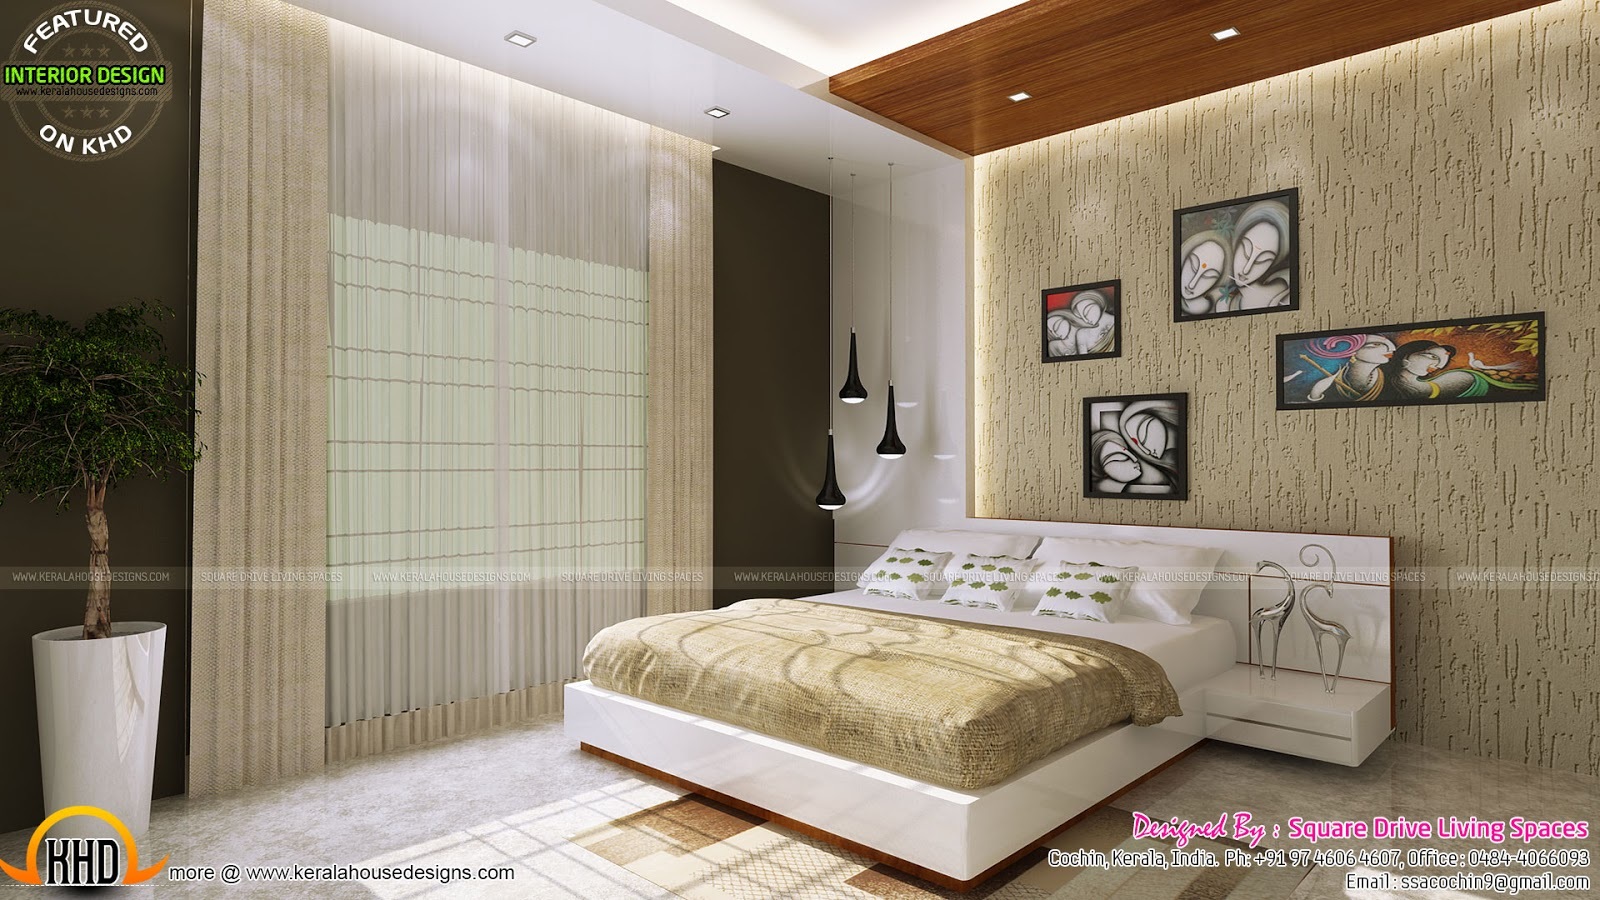 Excellent Kerala interior design - Kerala home design and ...